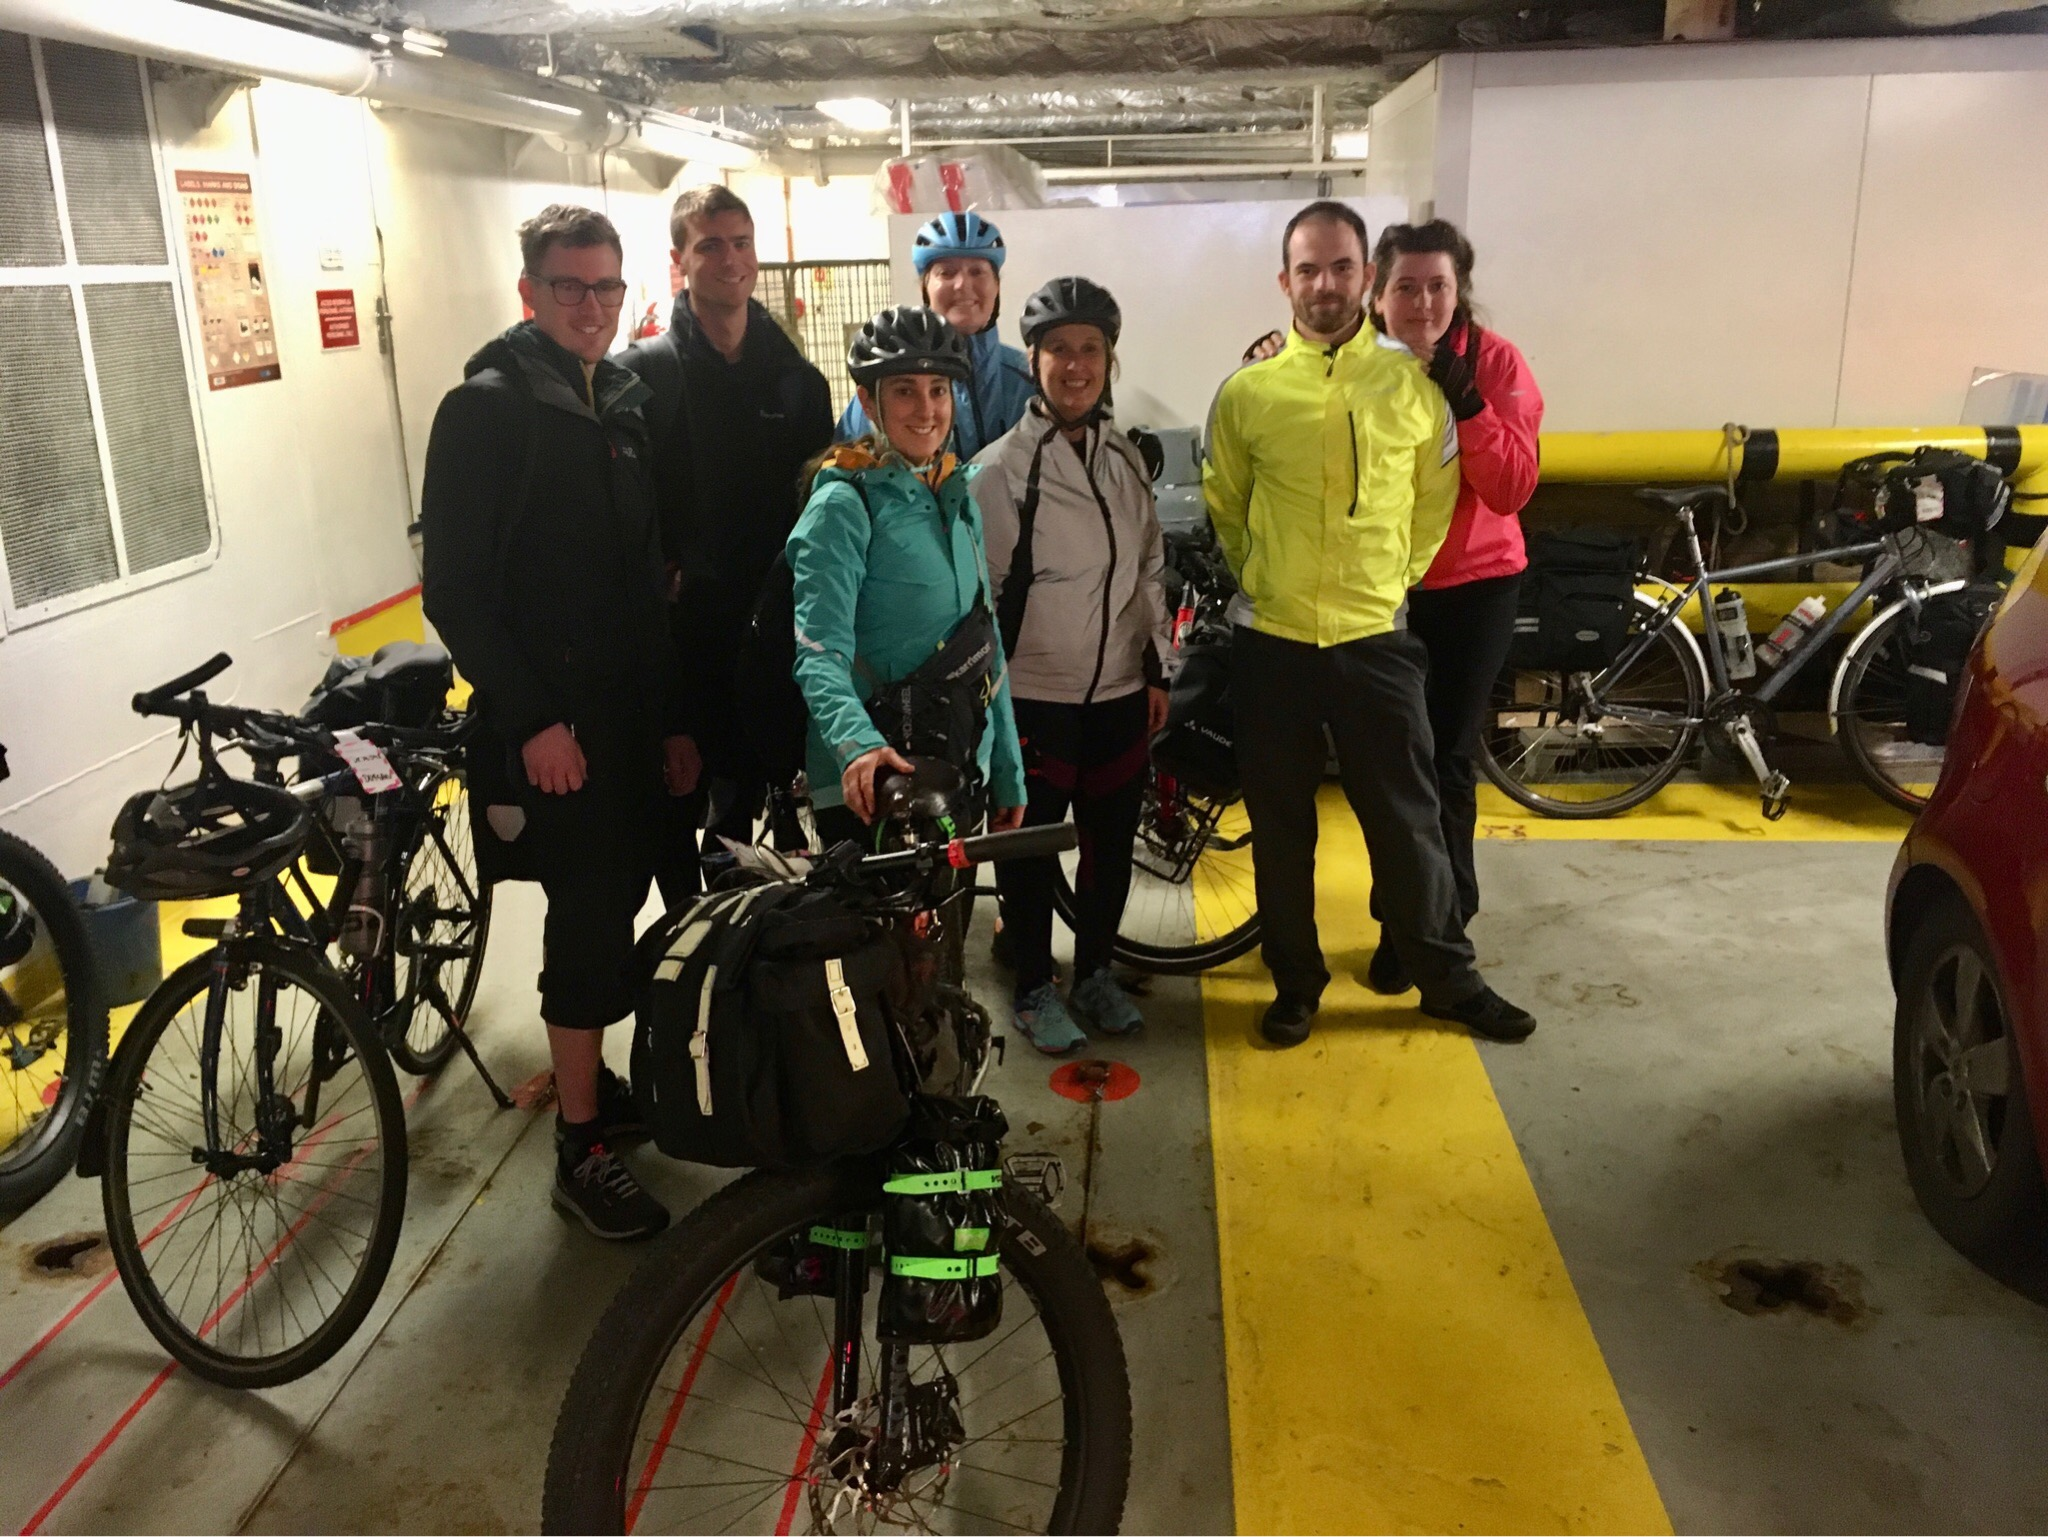 The group of cyclists on the ferry